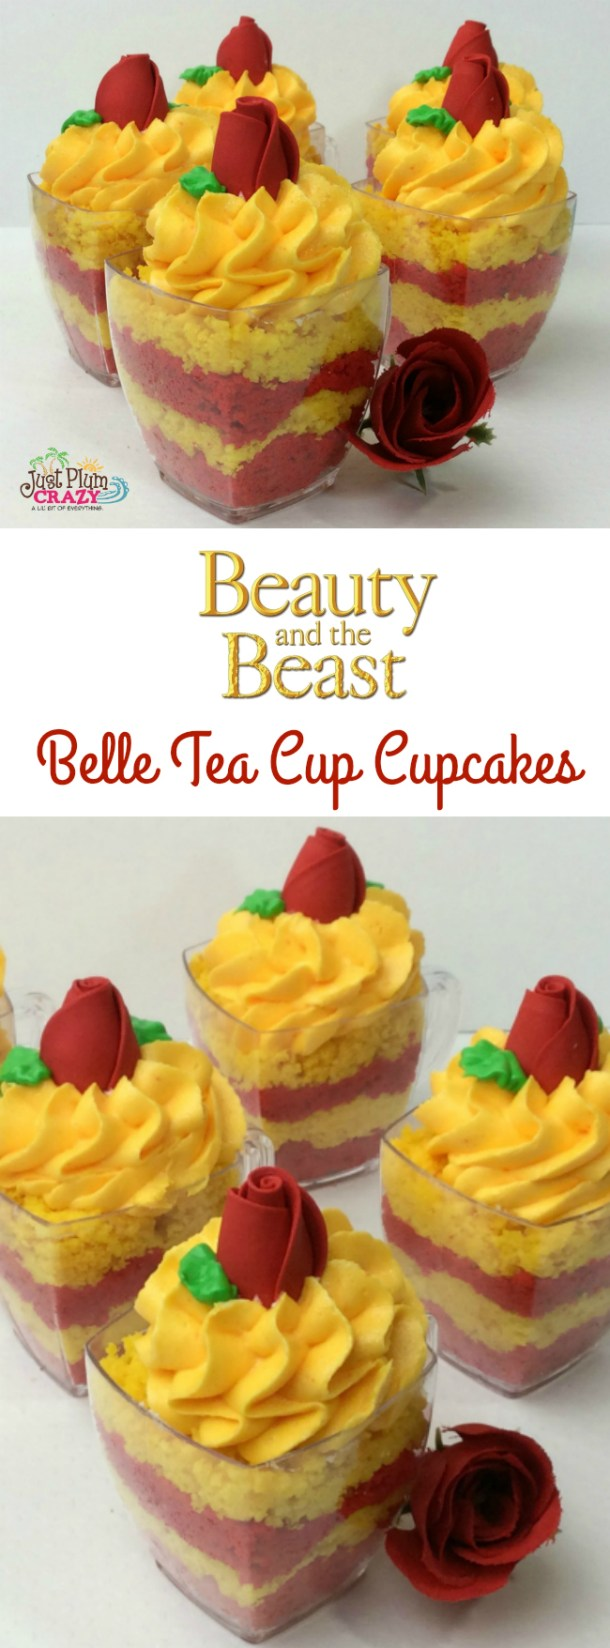 We are on a roll with sharing Beauty and The Beast recipes this week with a Belle Margarita recipe. Today we have some Belle Tea Cup Cupcakes recipe.